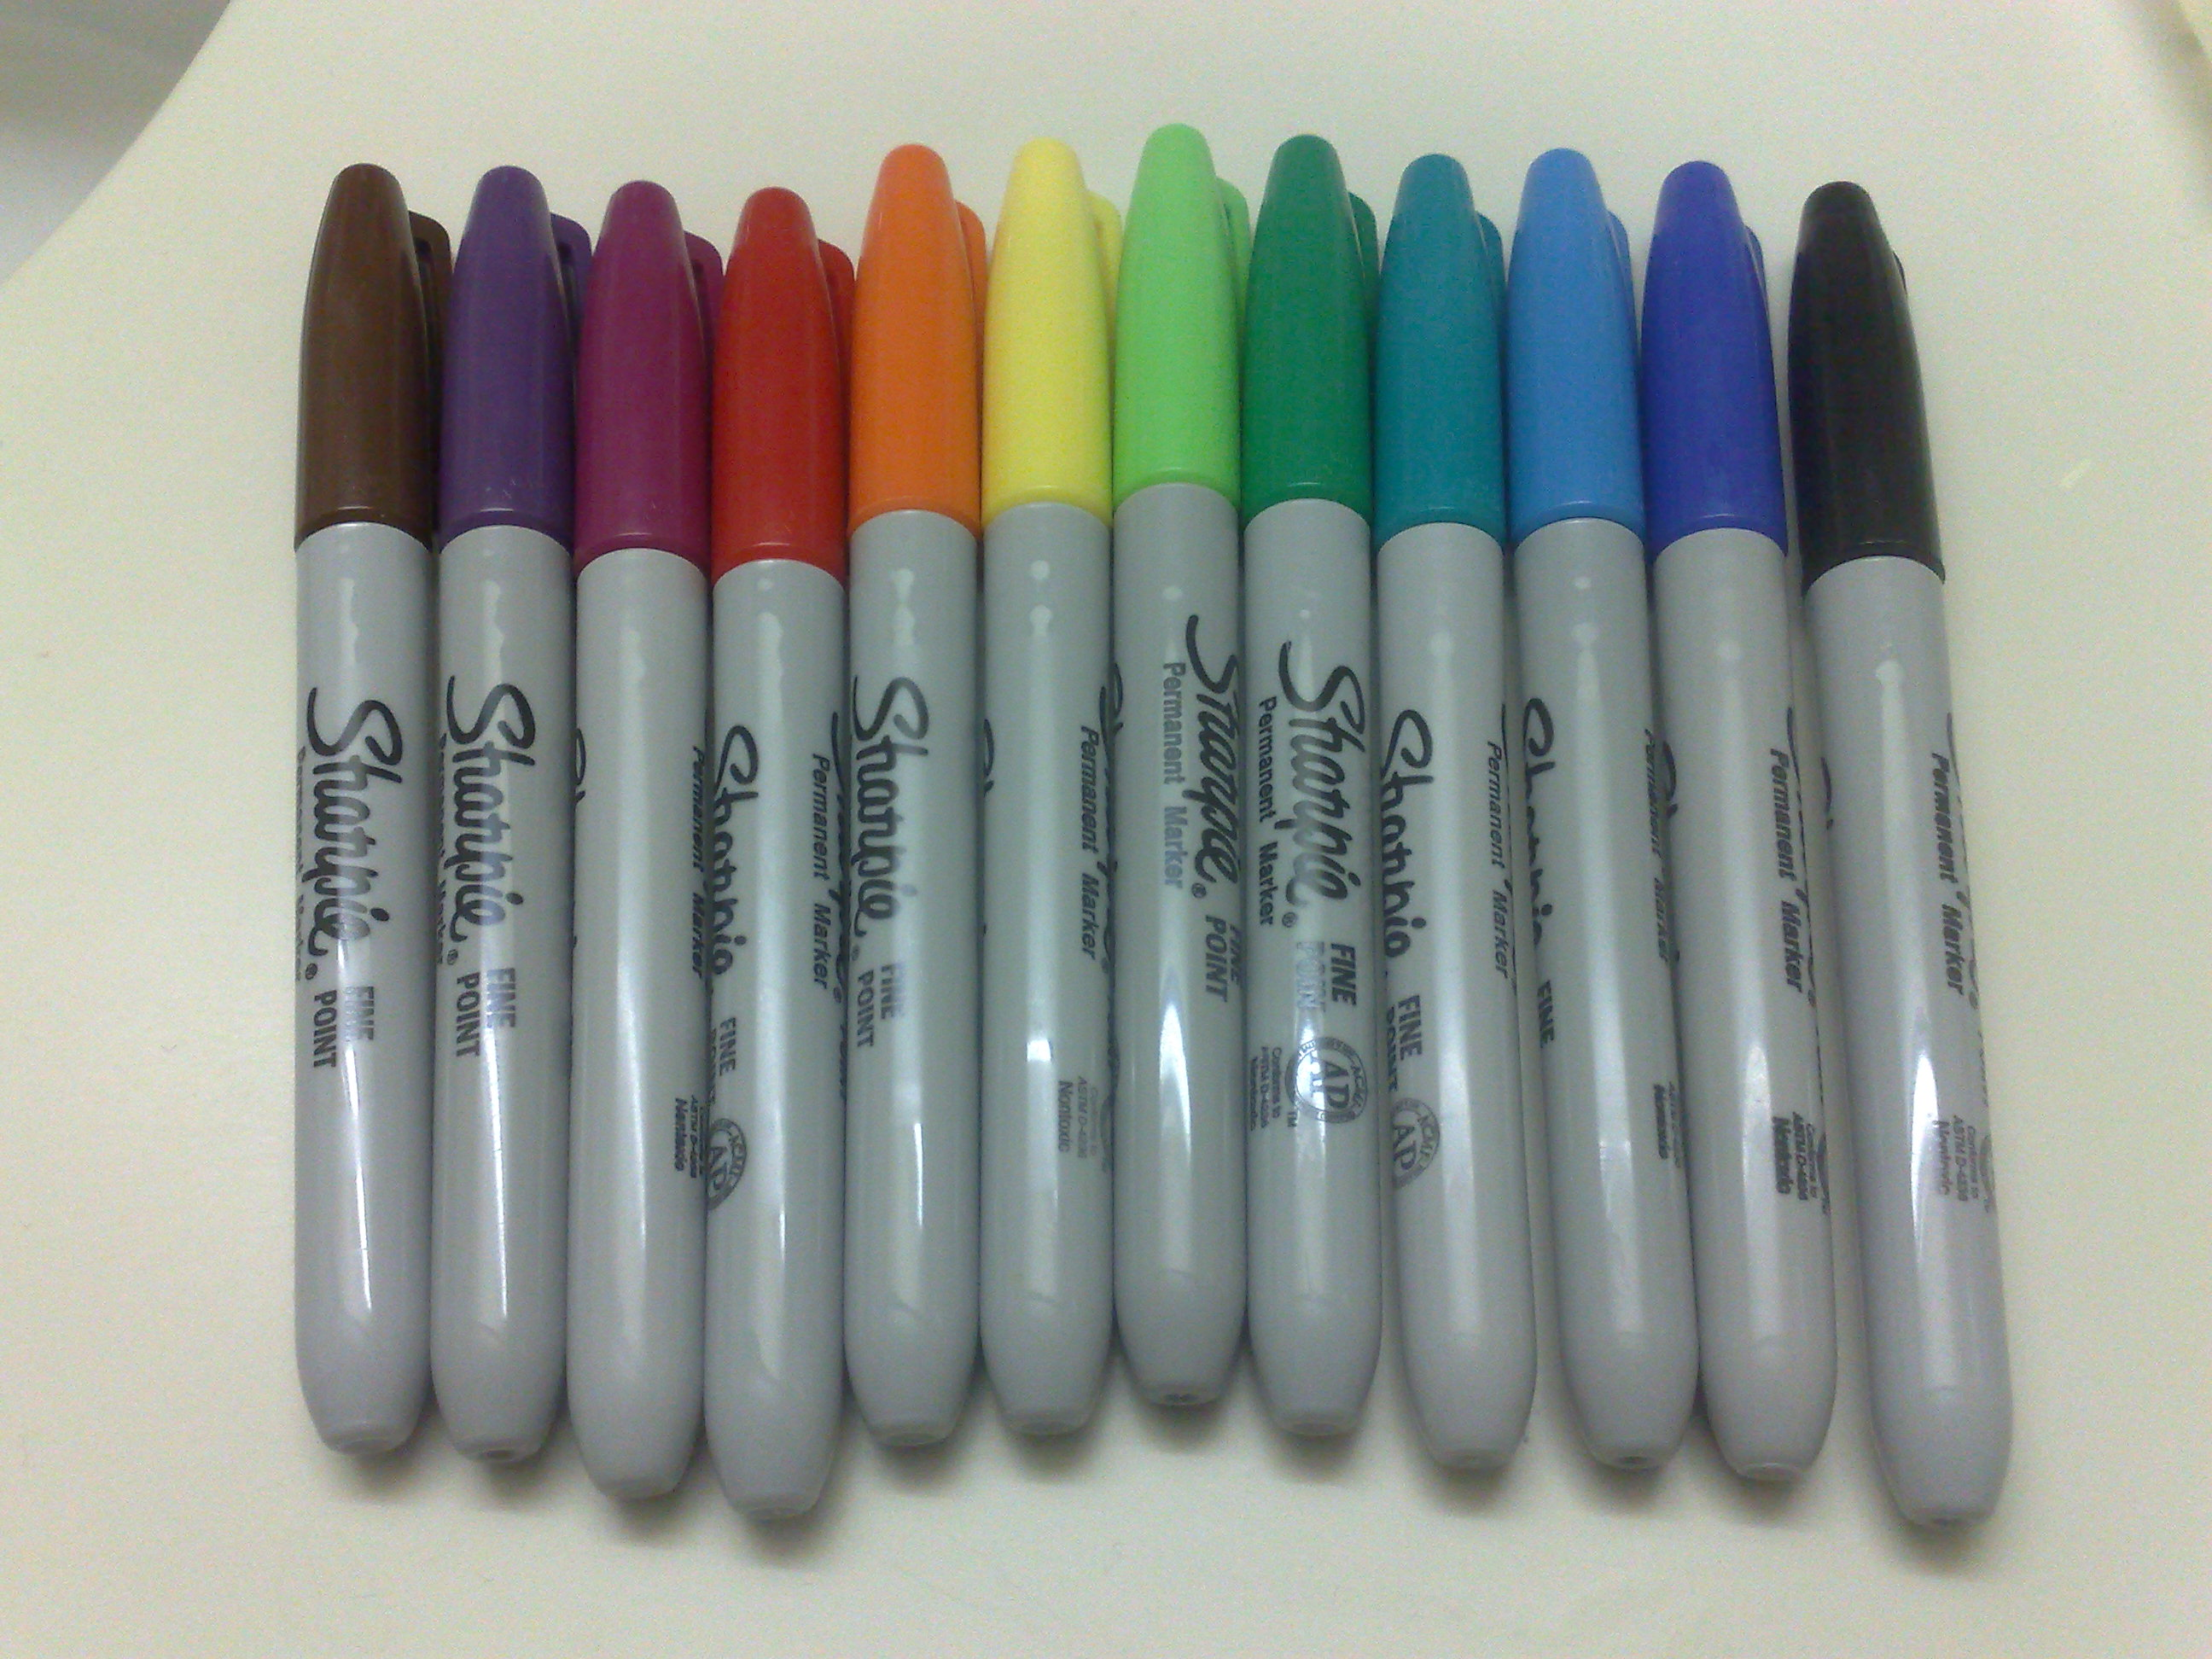 Sharpie Color Chart: Sharpie colours (4501284776).jpg - Wikimedia Commons,Chart